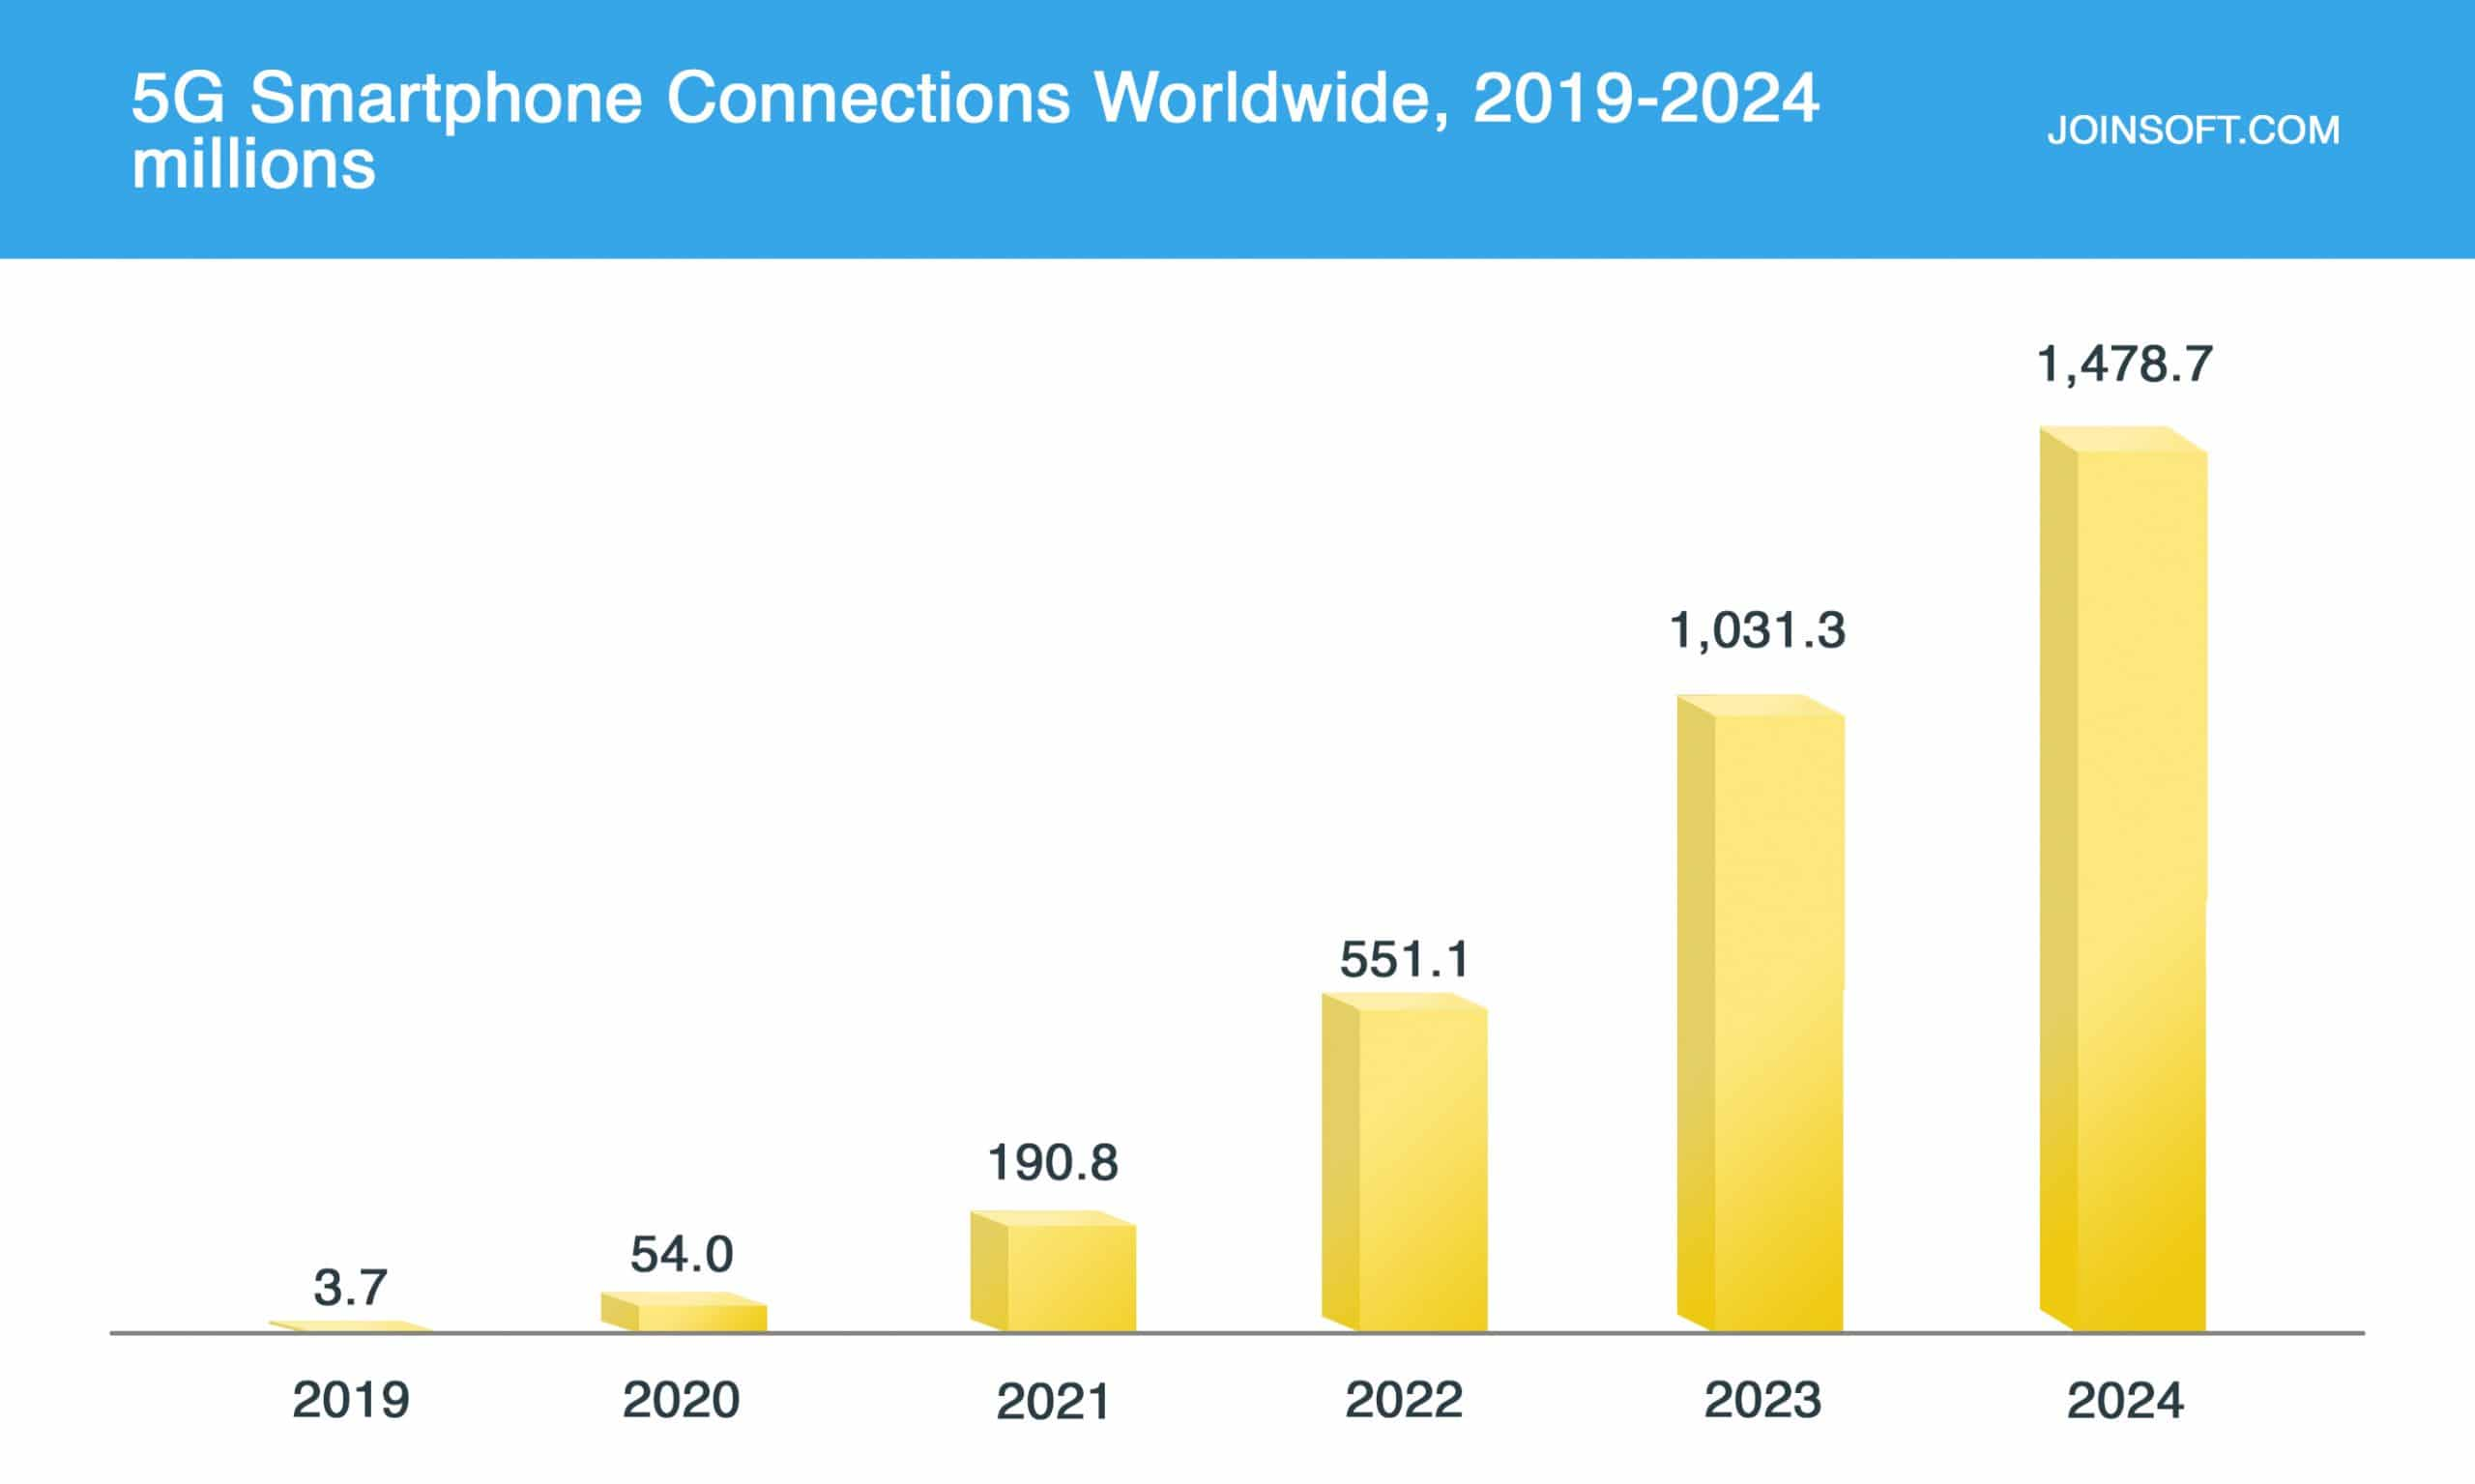 5G Smartphone Connections Worldwide, 2019 - 2024